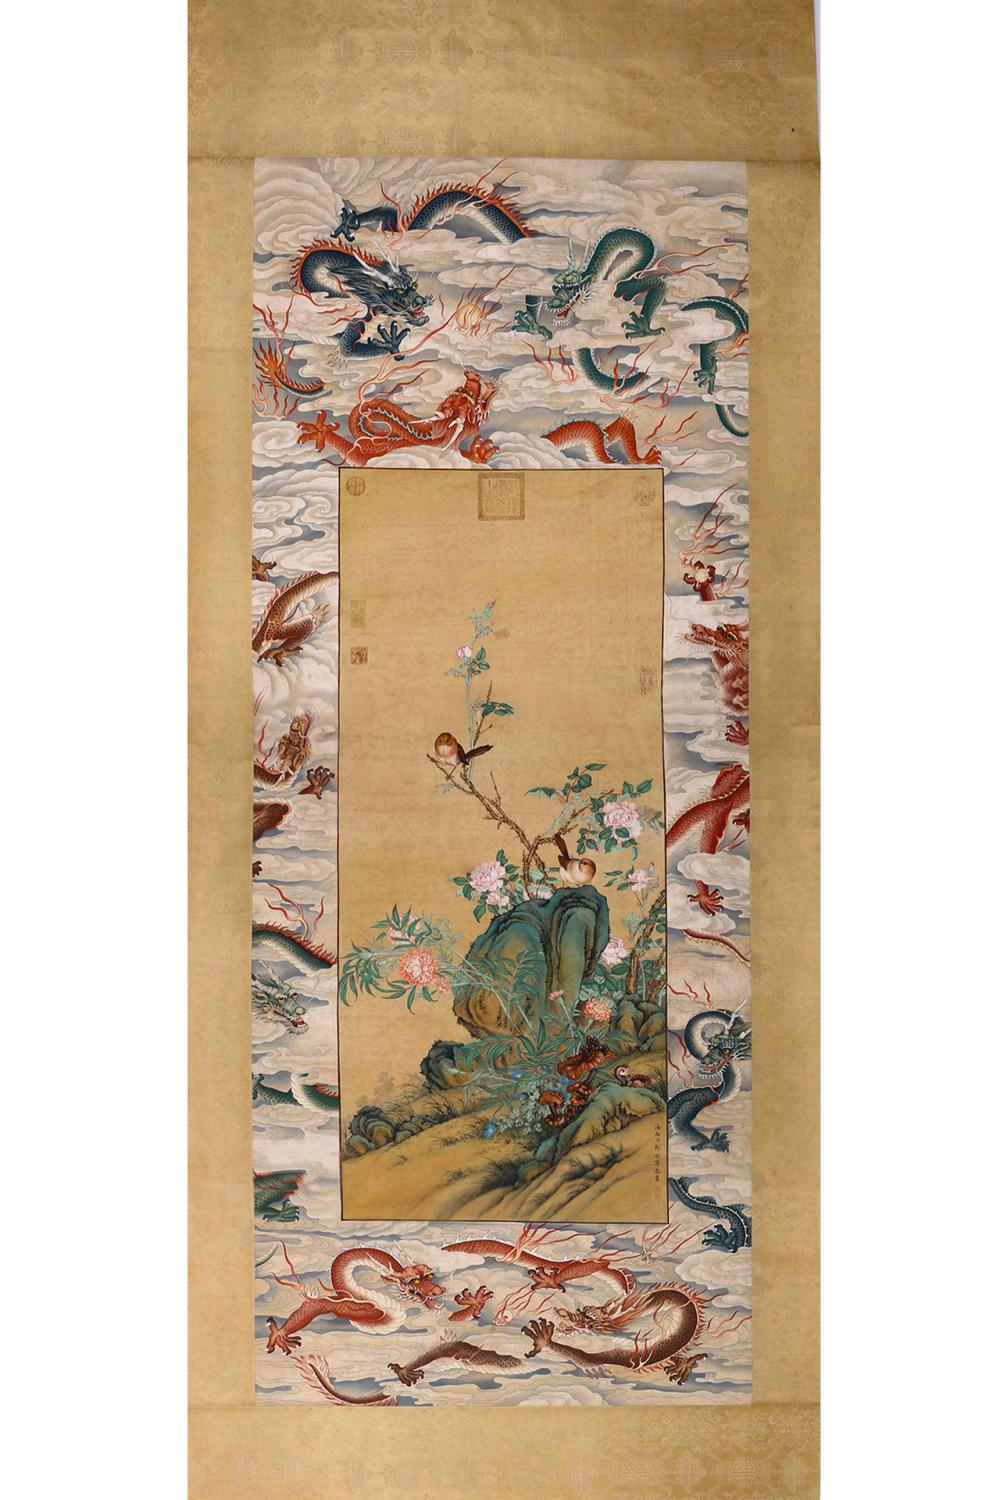 BIRDS AND FLOWERS PAINTING IN DRAGON BACKGROUND